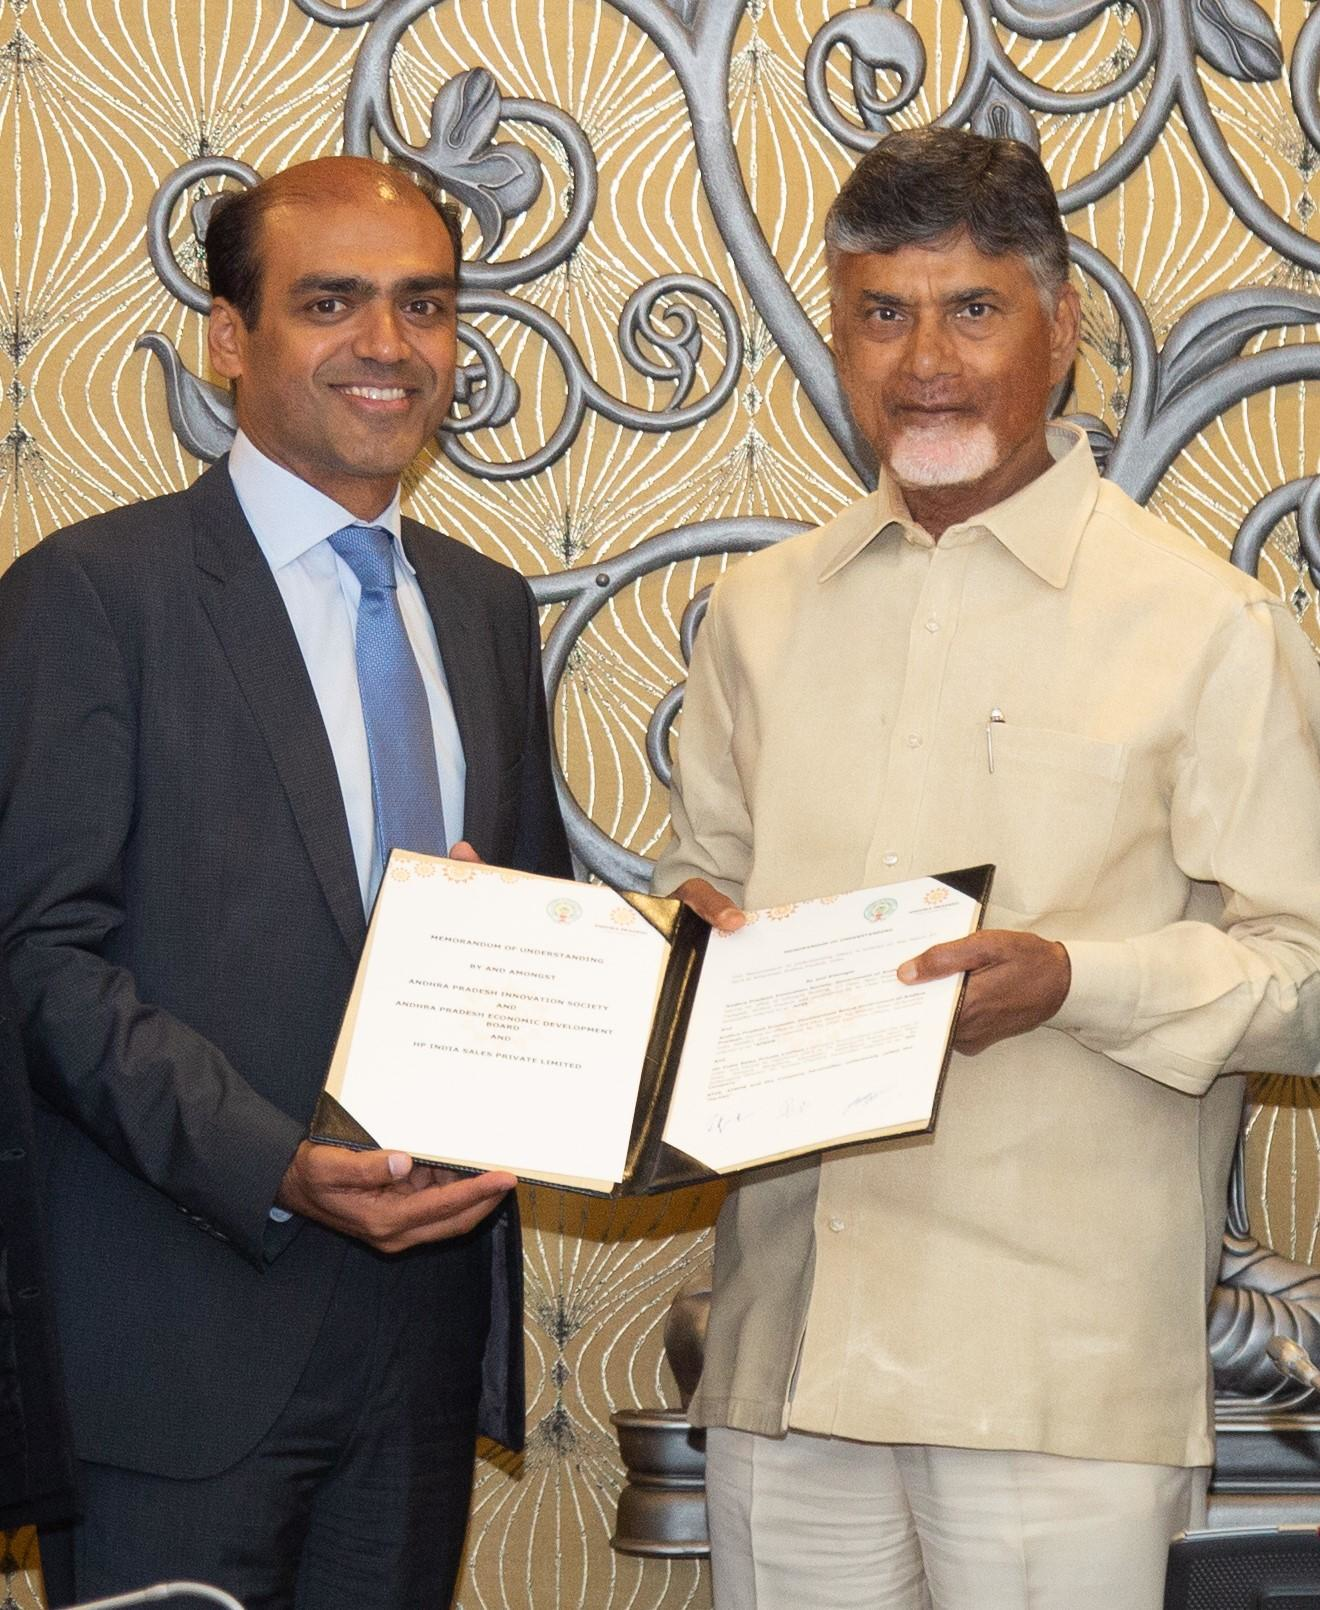 N. Chandrababu Naidu, Chief Minister of Andhra Pradesh (Right) with the signed document. Image via The Economic Times India.